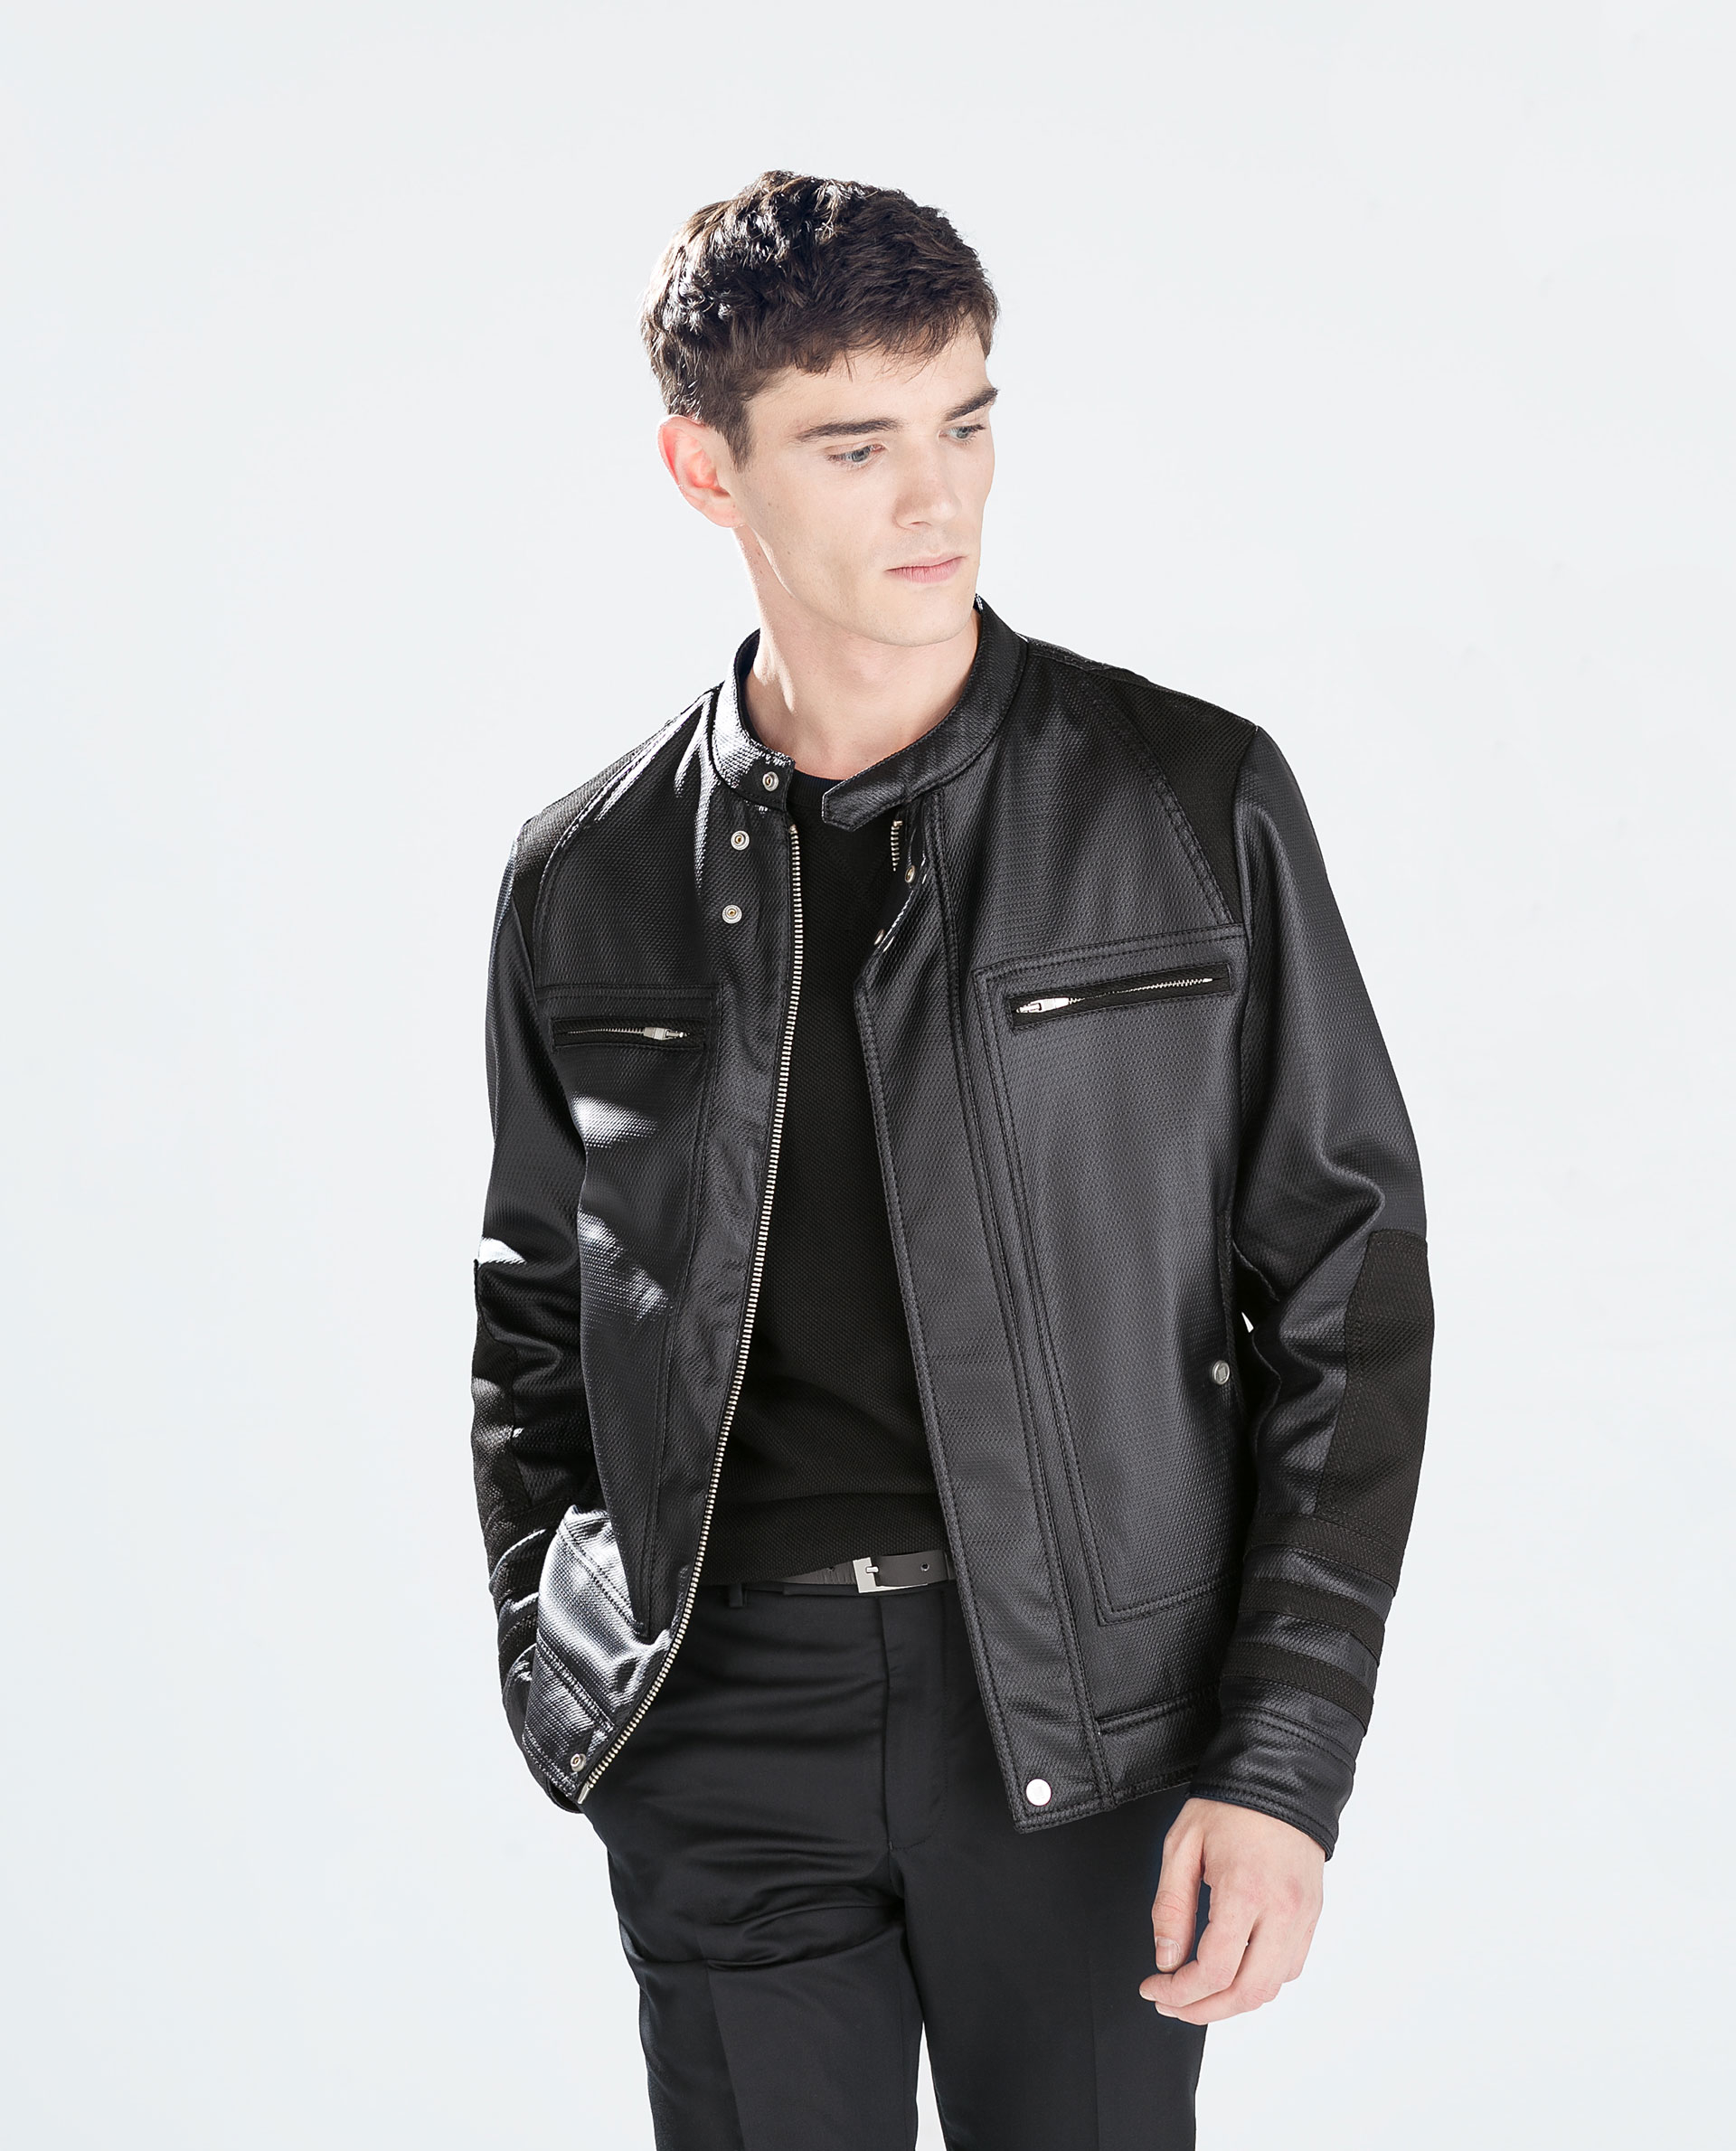 Mens jackets and coats zara – Modern fashion jacket photo blog